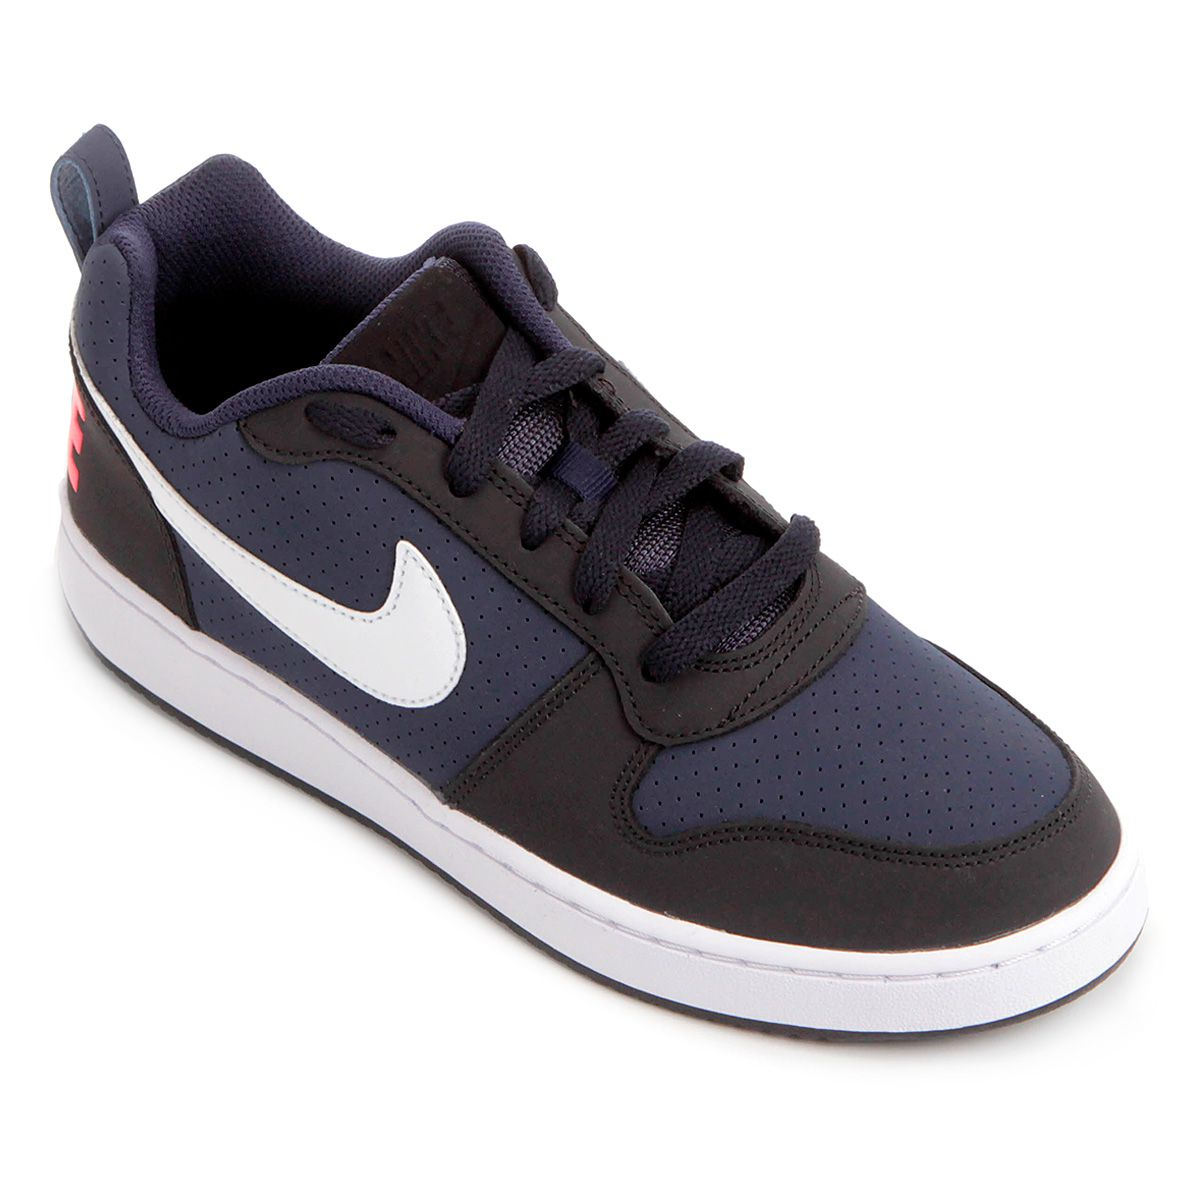 Tênis Nike Recreation Low Masculino